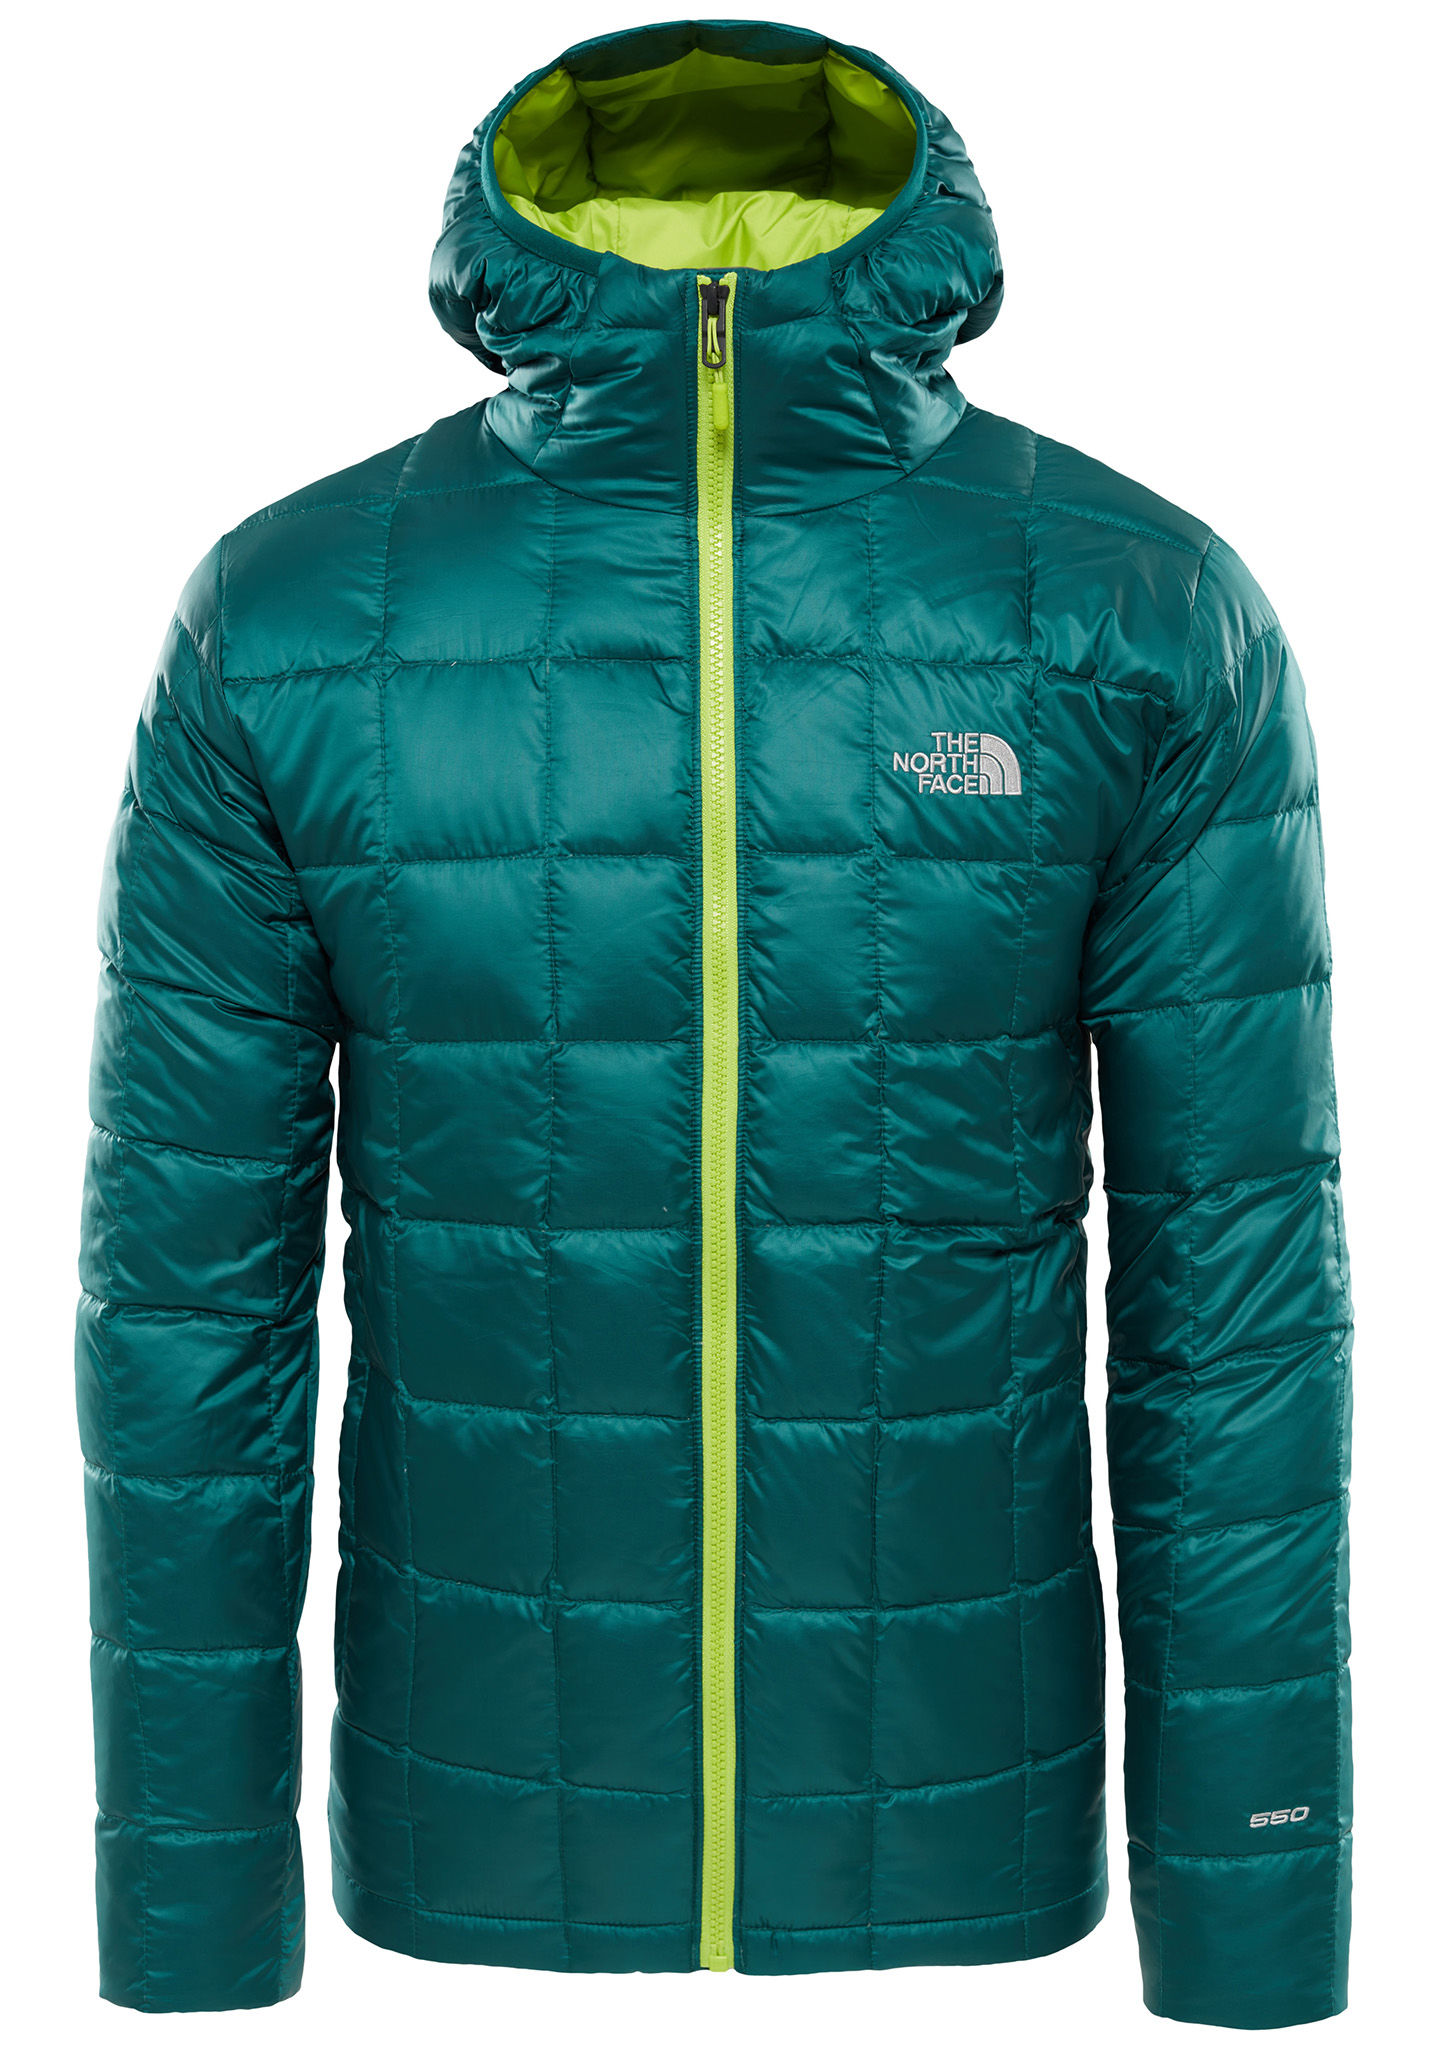 7cfcd5ba2 THE NORTH FACE Kabru Hooded Down - Outdoor Jacket for Men - Green